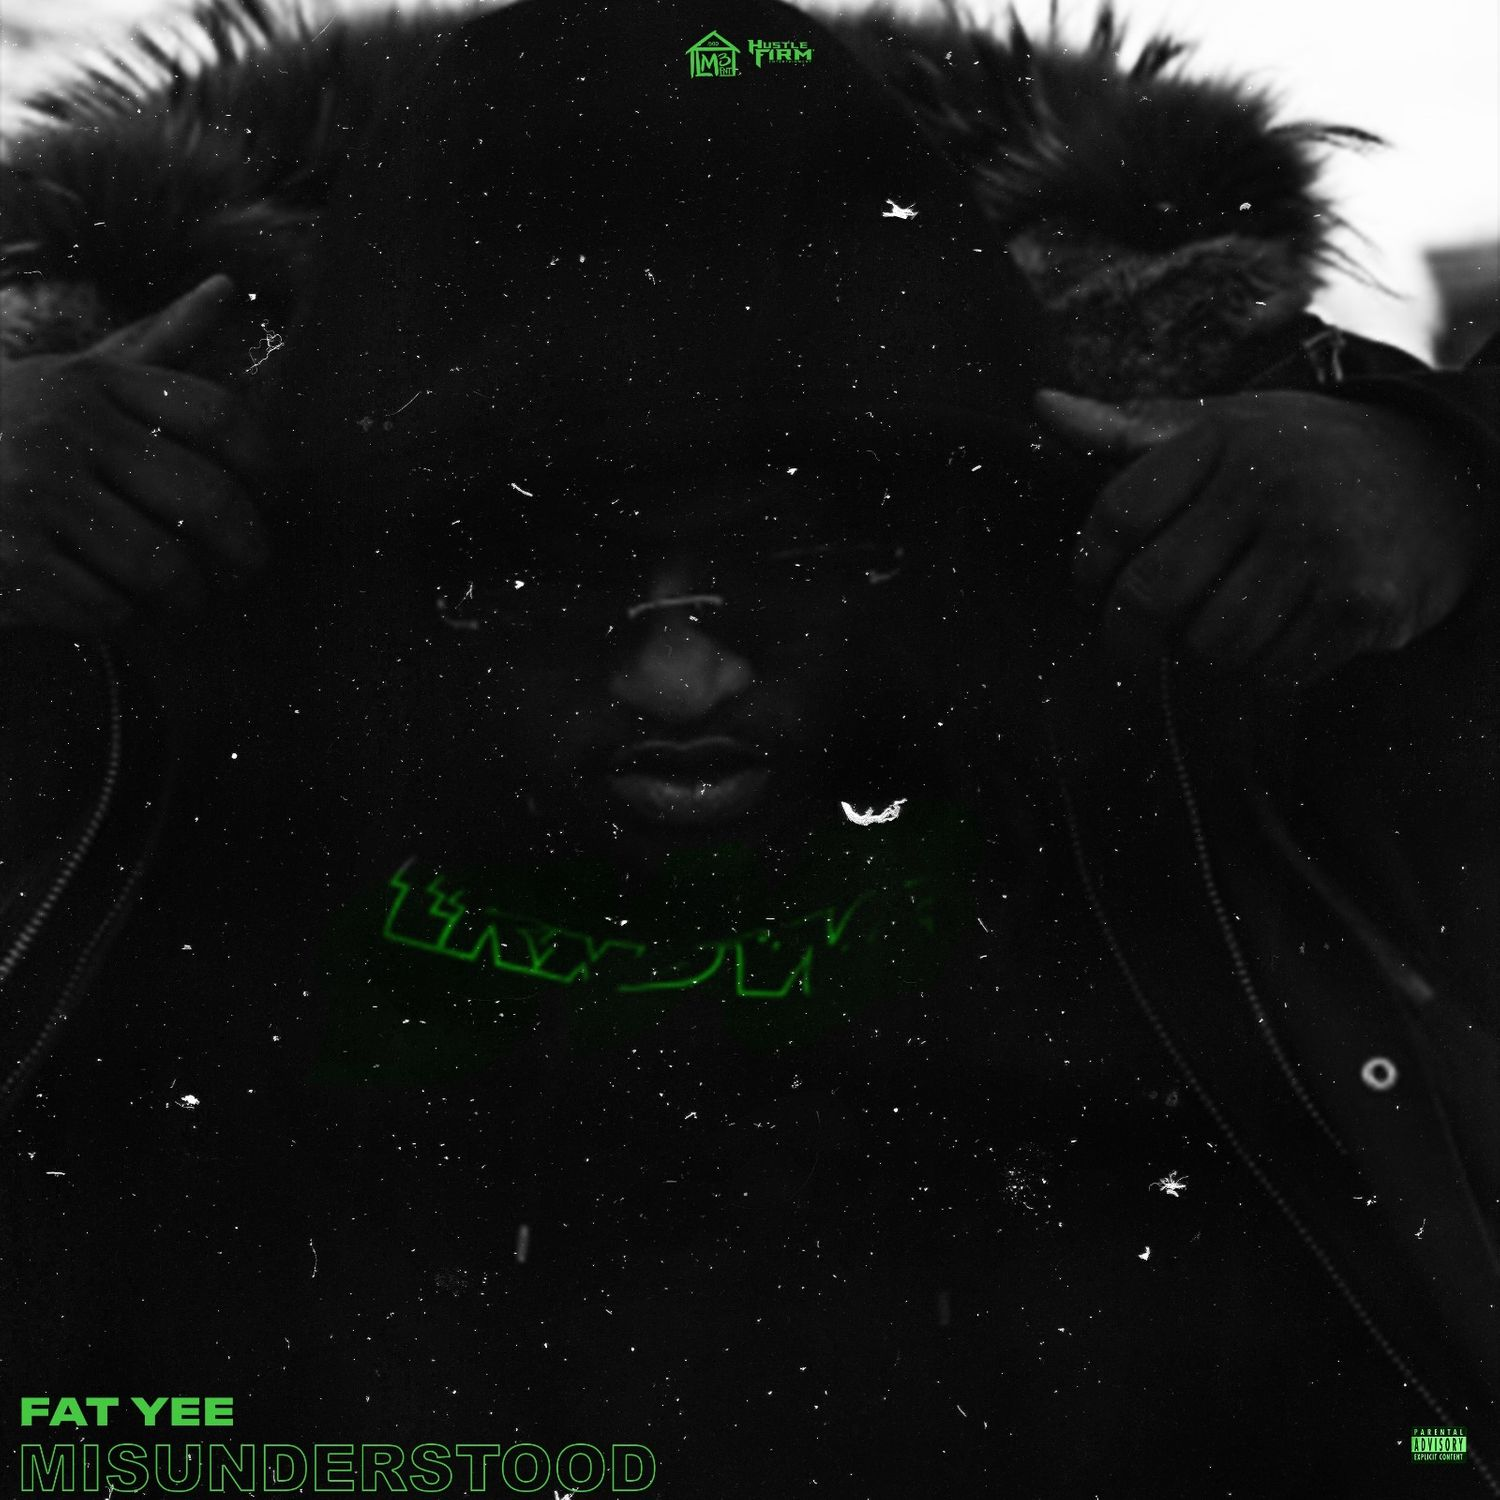 Fat Yee – 'Misunderstood' (Stream)